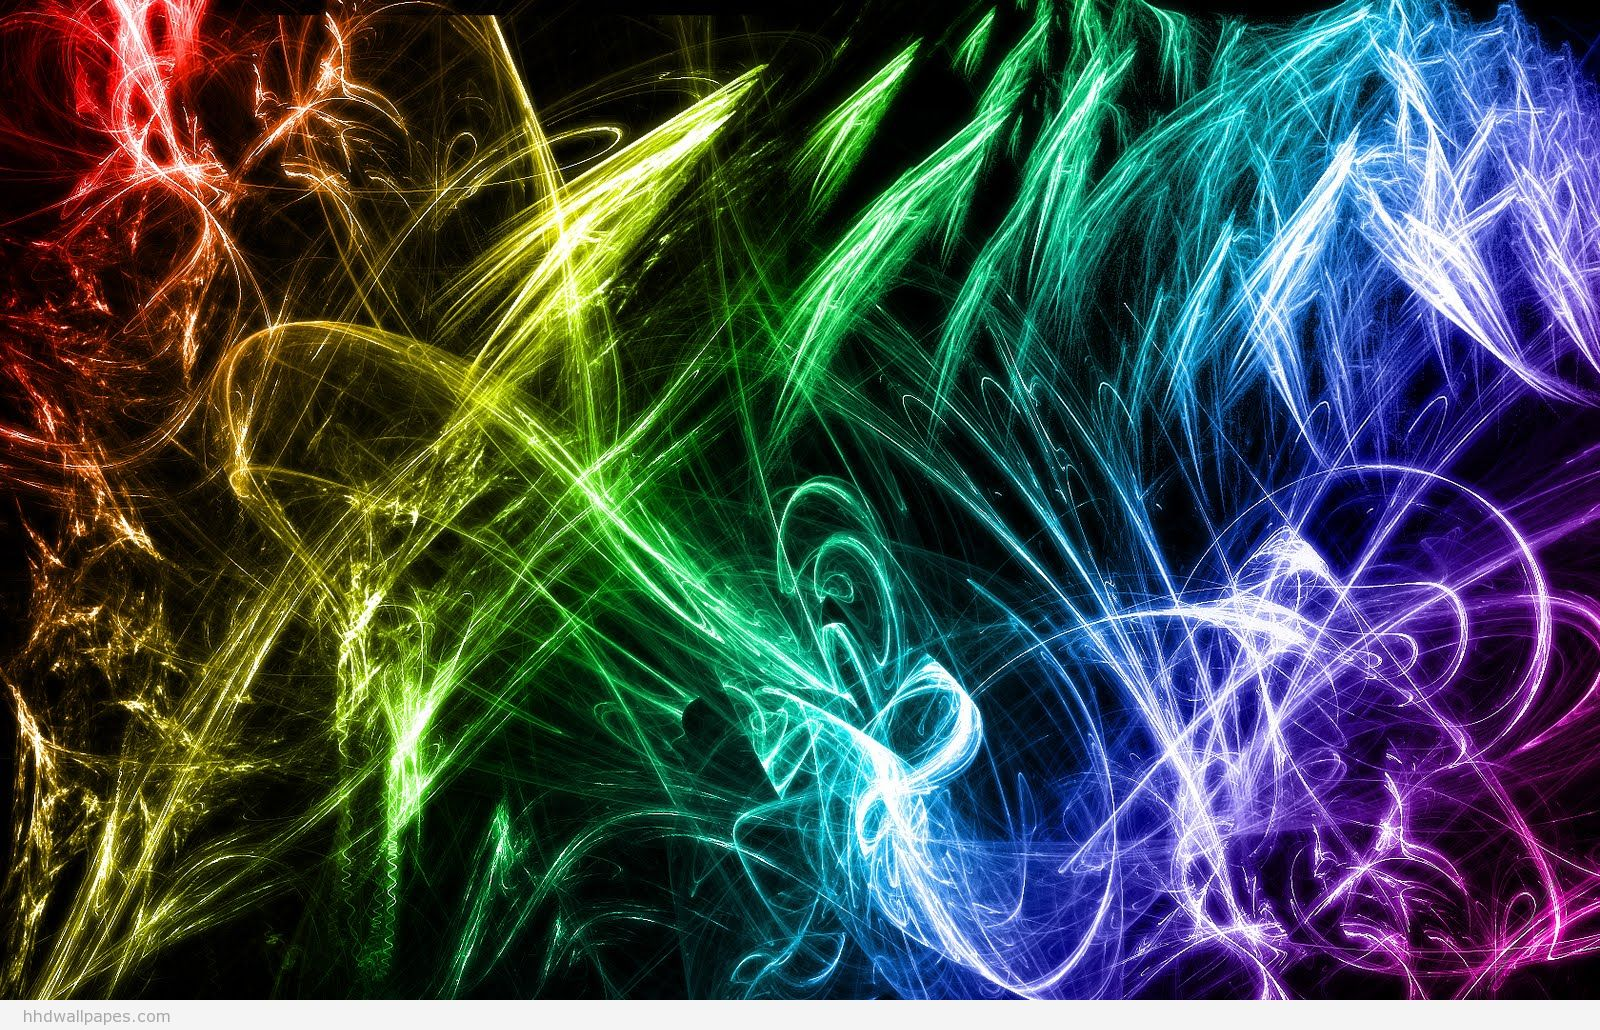 HD Wallpapers Colorful Abstract Desktop Backgrounds